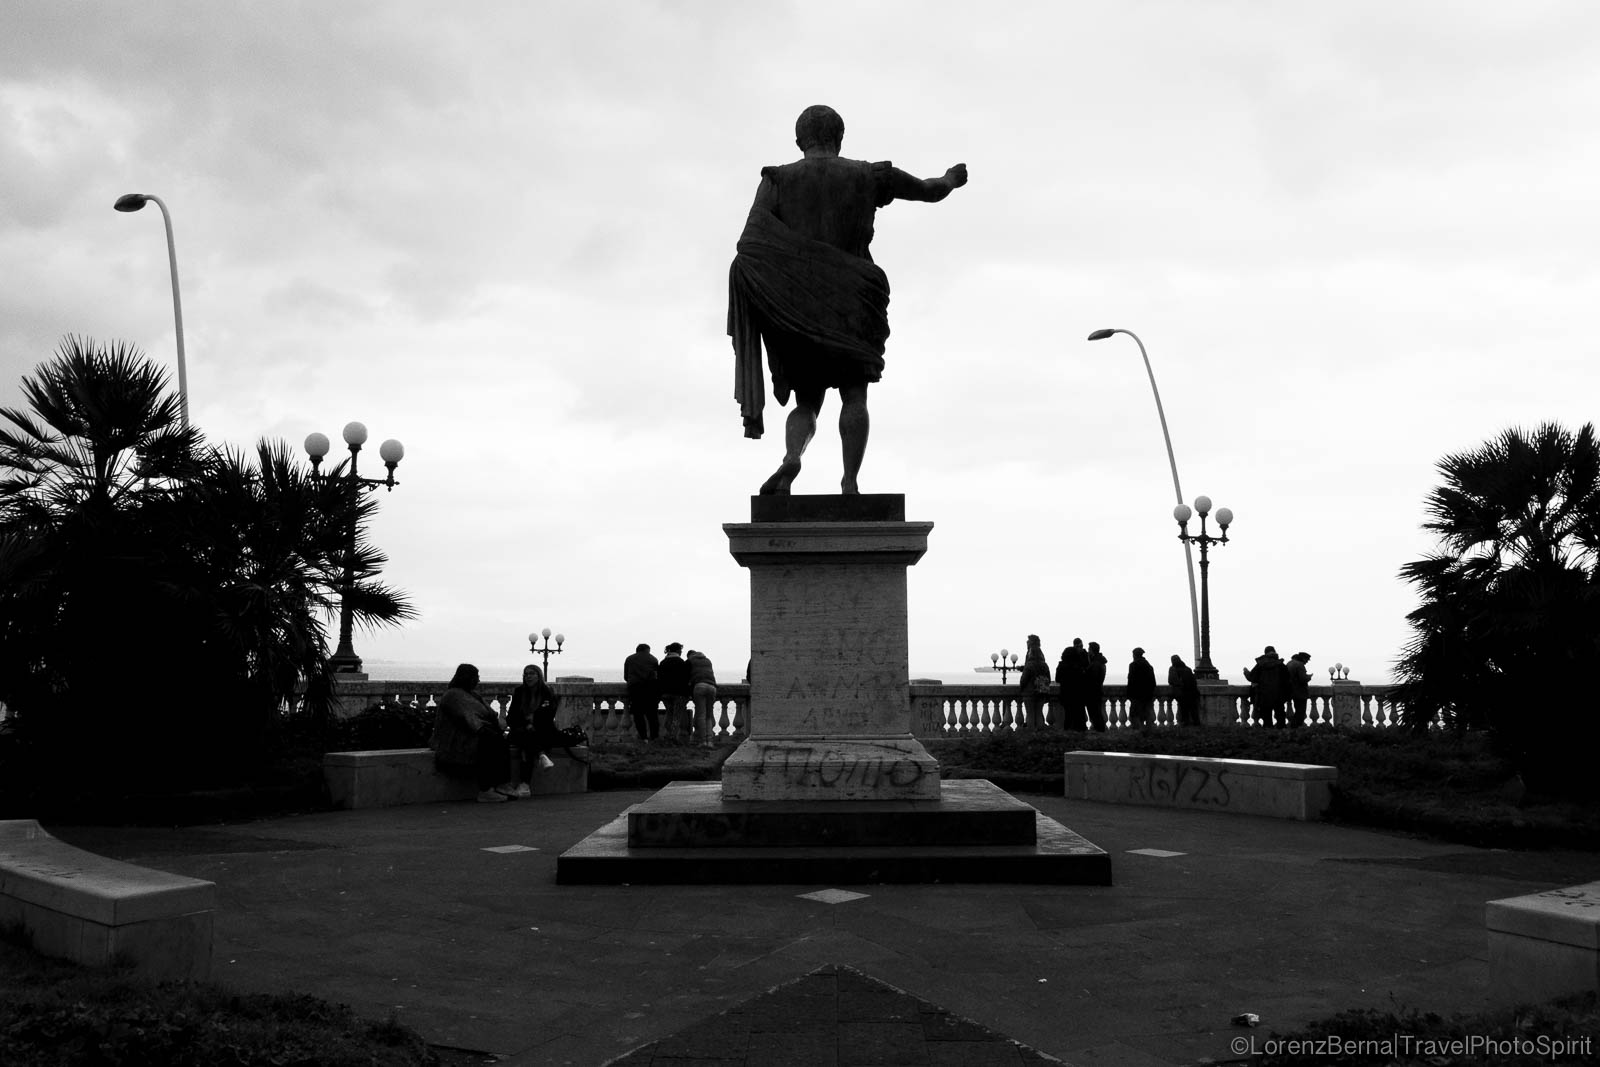 Statue of Imperator Ottaviano Augusto, in the Molosiglio Gardens, facing the gulf of Naples, Italy.